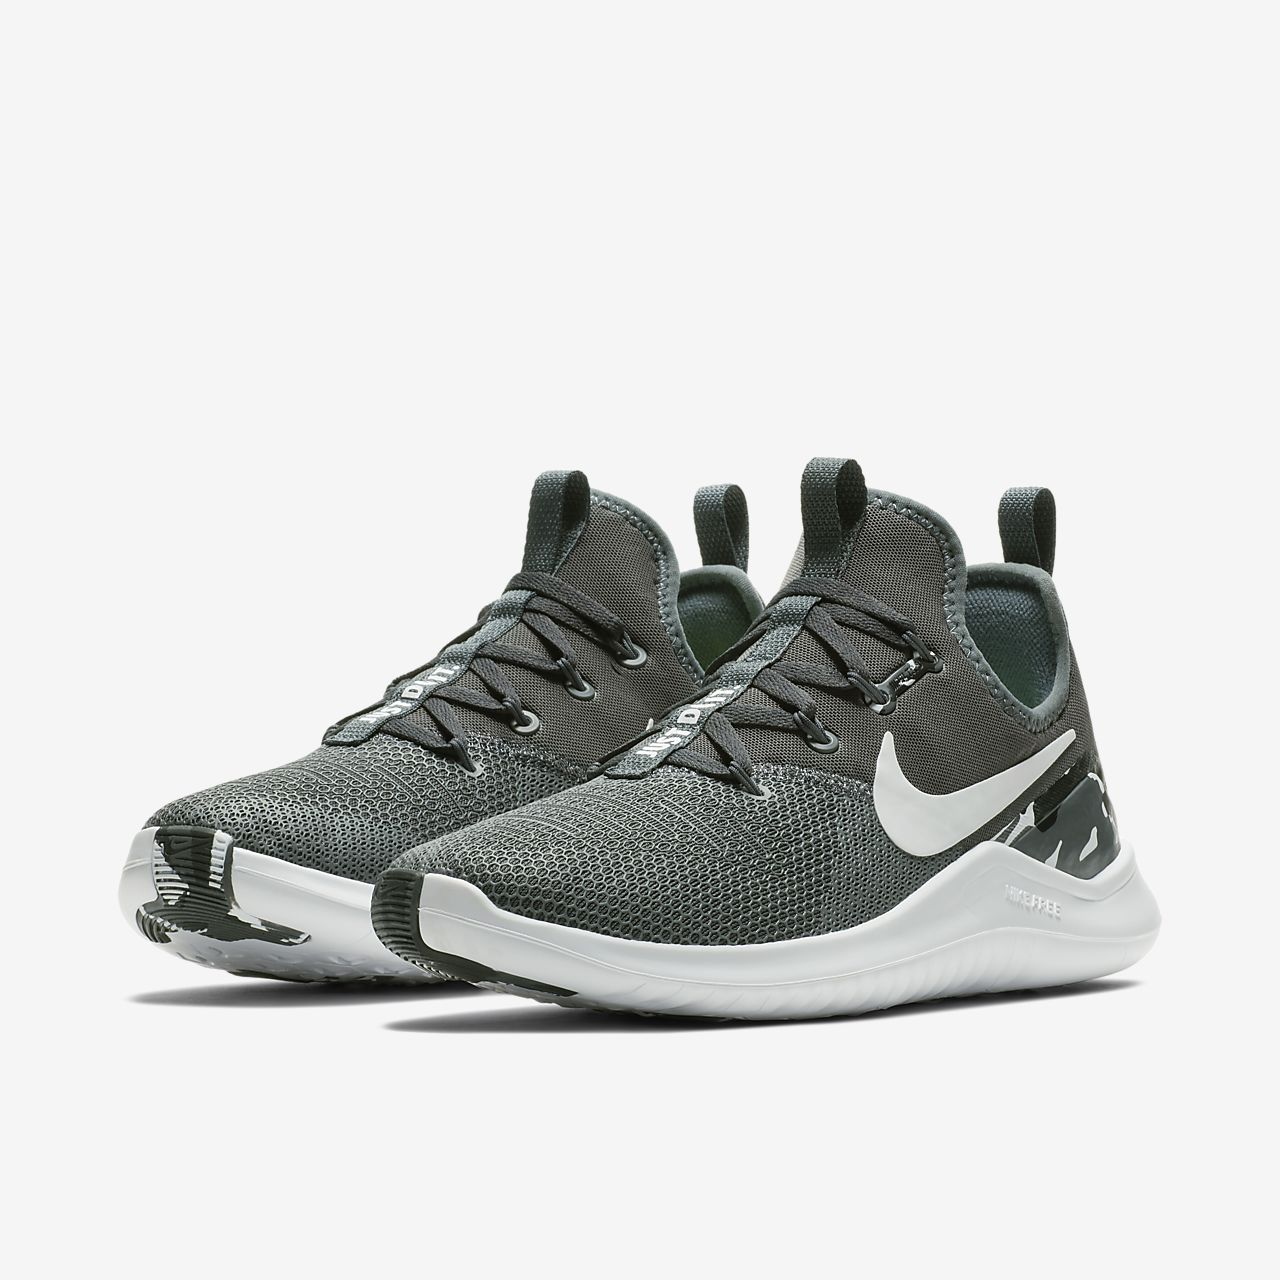 ... Nike Free TR 8 AMP Women's Training Shoe